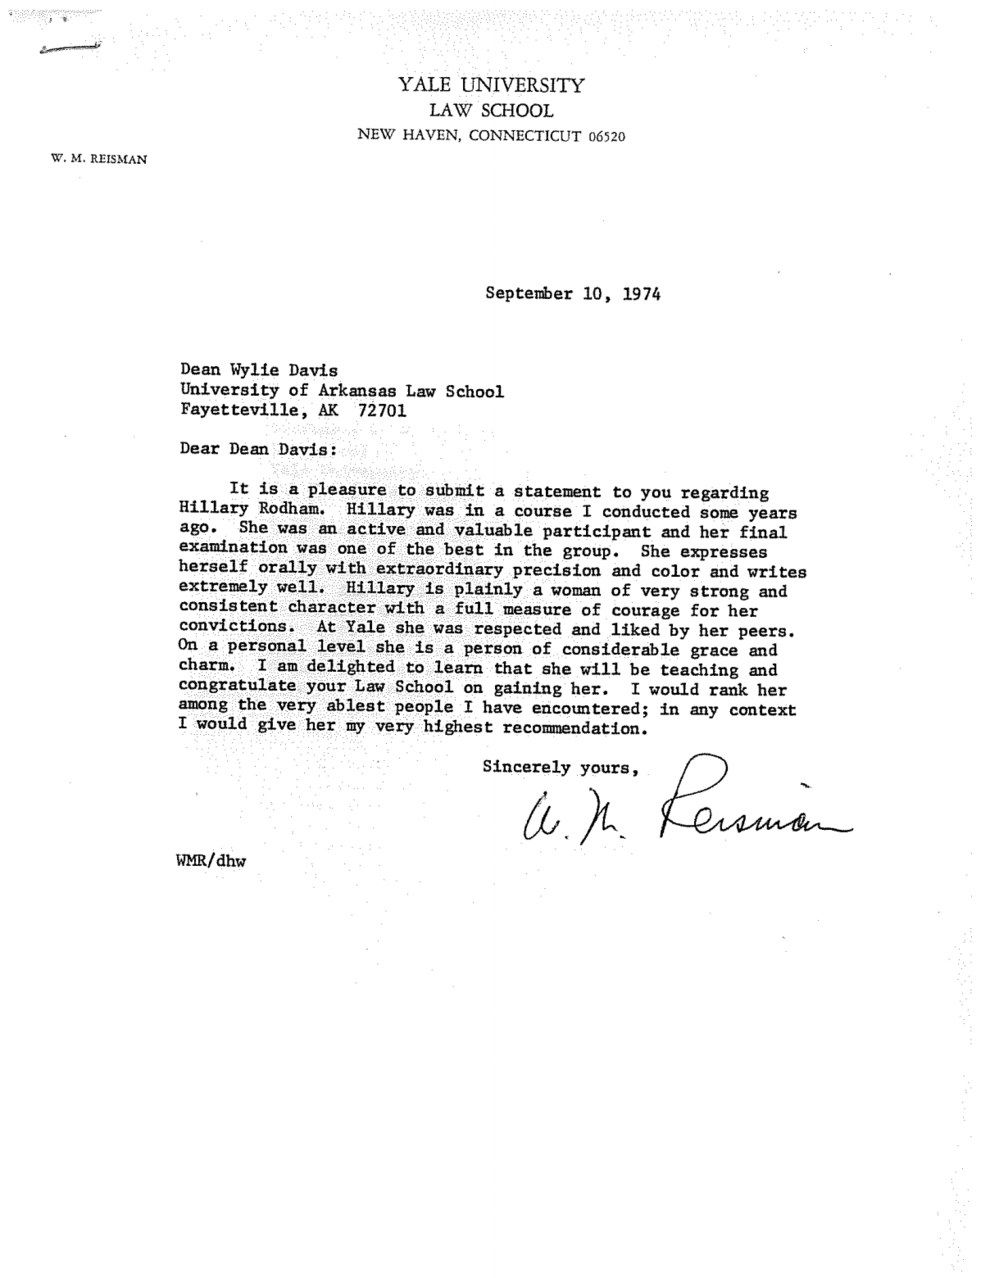 A letter of recommendation from Yale law professor W.M. Reisman